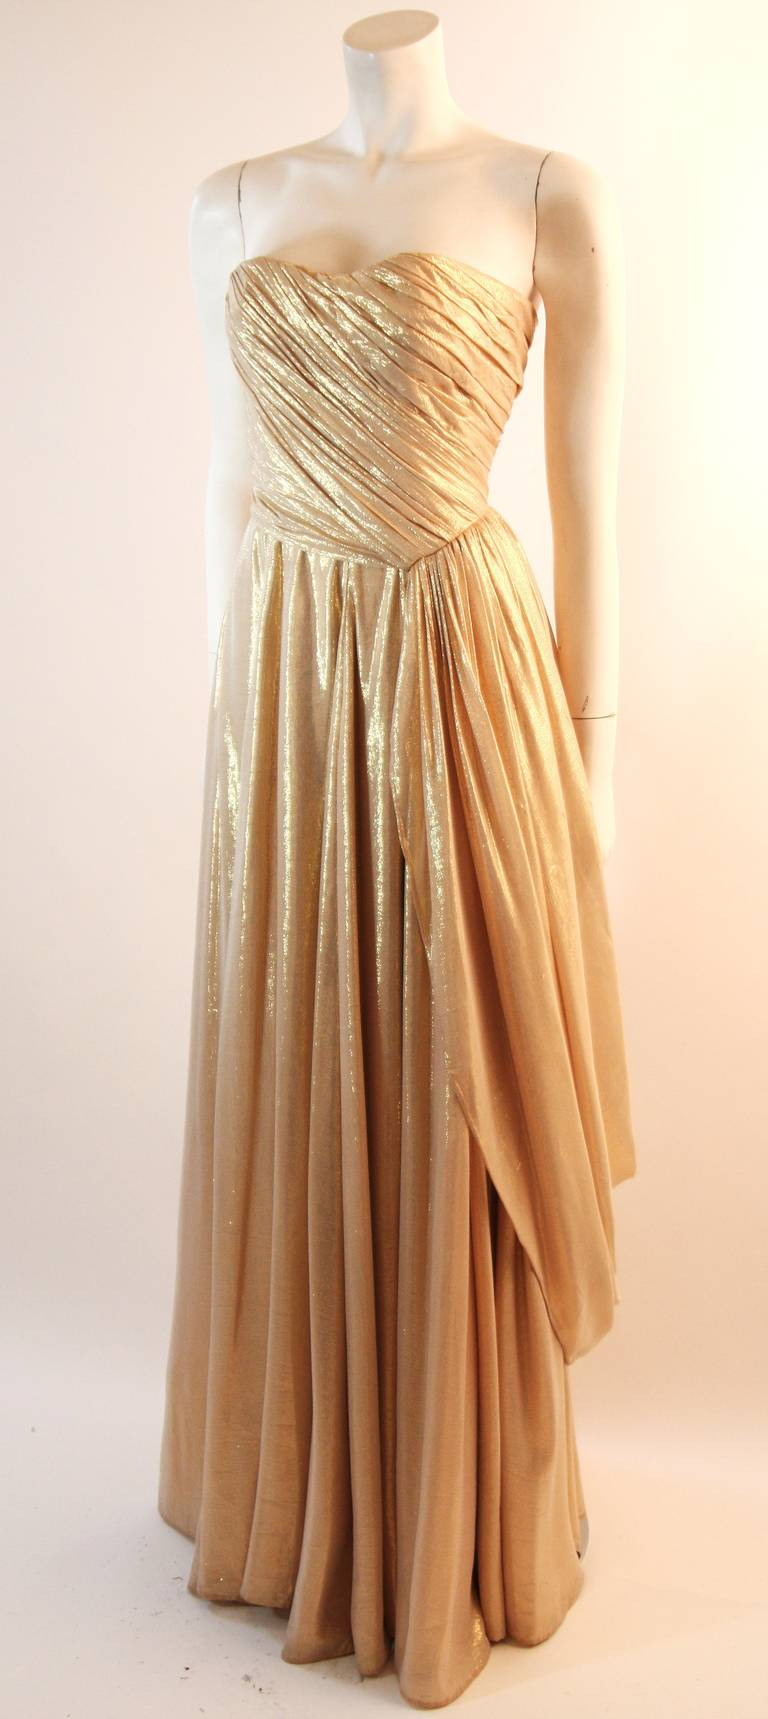 Elizabeth Mason Couture Custom Draped Strapless Gold Lame Gown In Excellent Condition For Sale In Los Angeles, CA